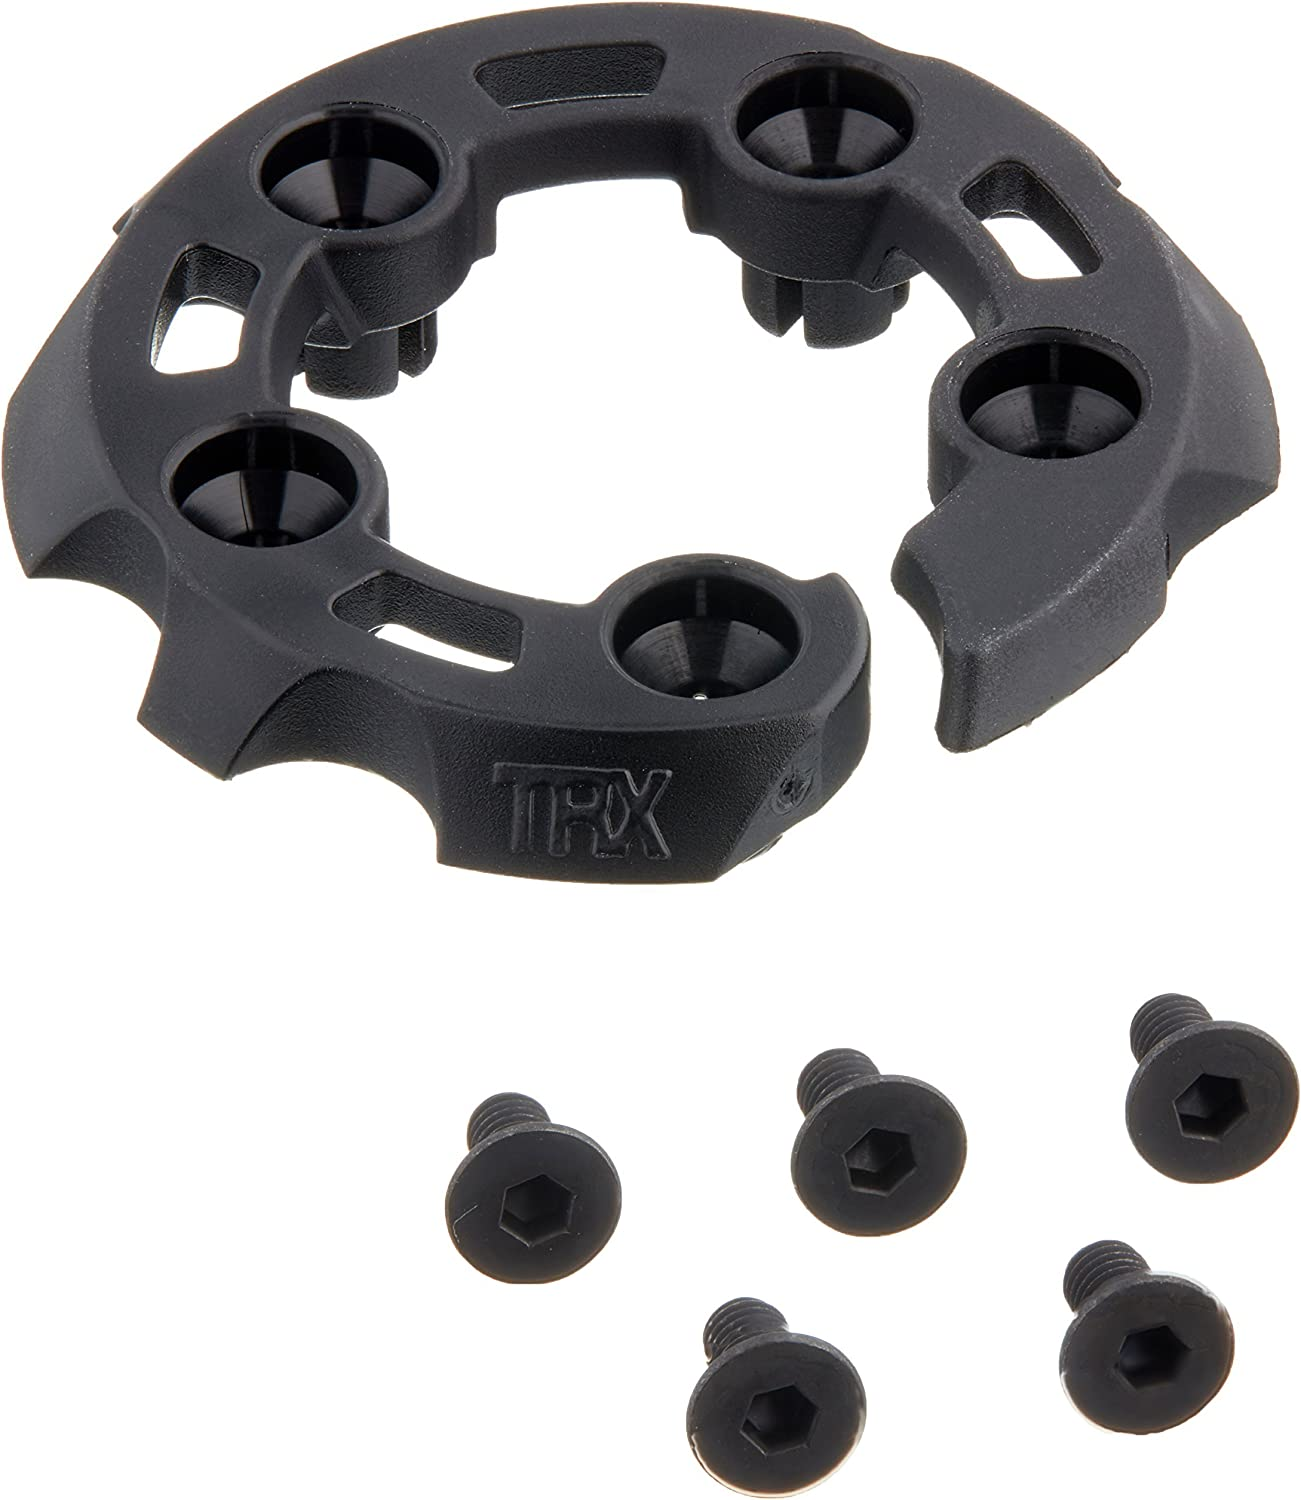 Traxxas 5228 Cooling Head Protector, TRX 3.3